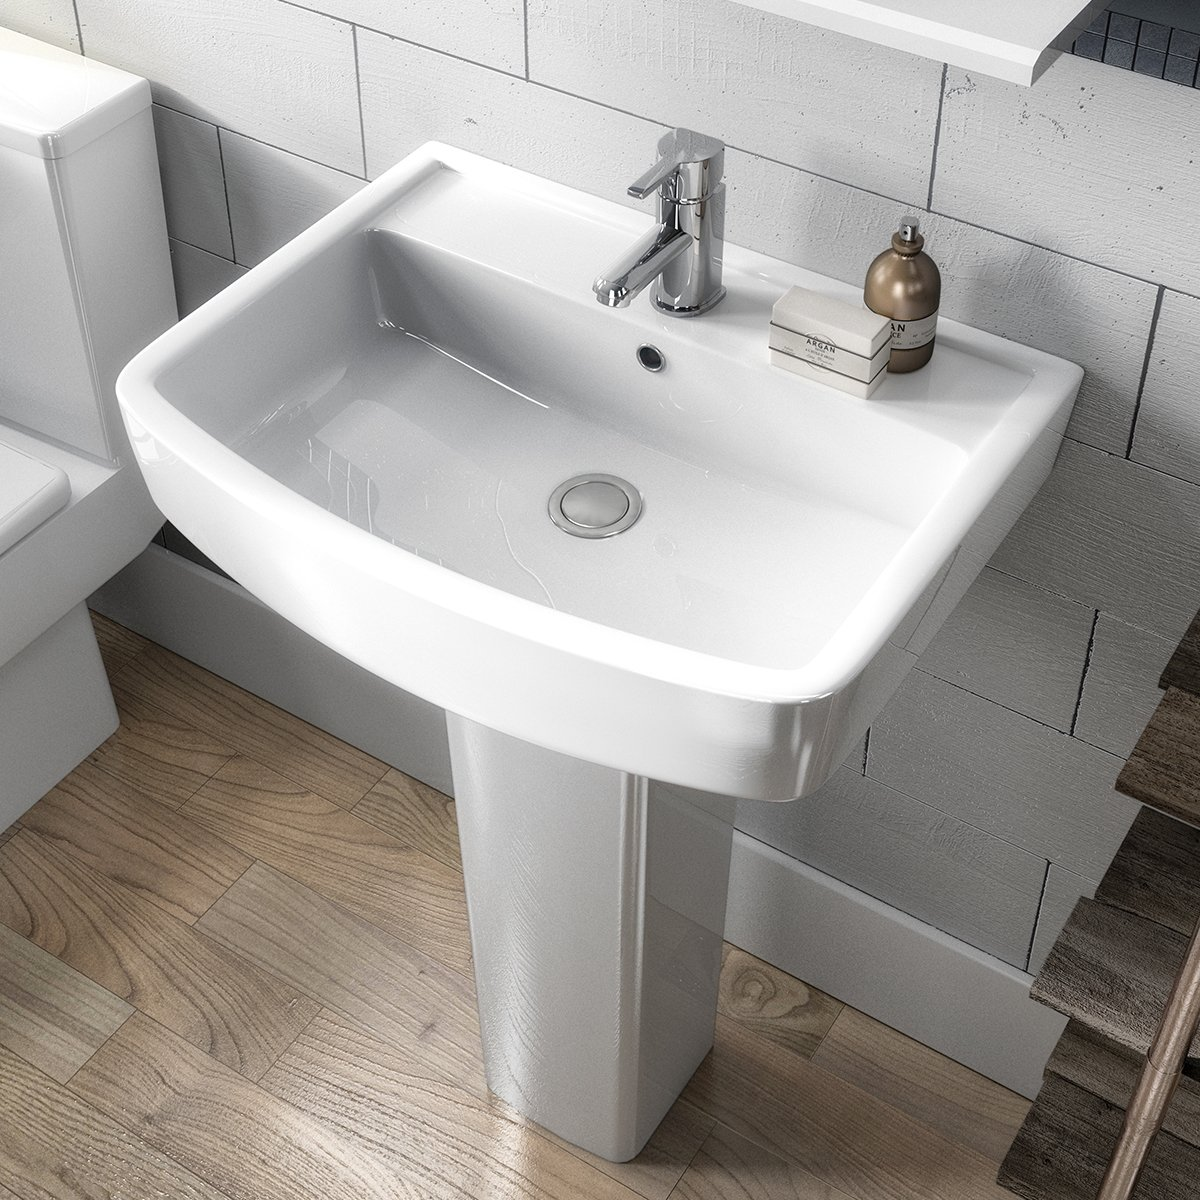 Premier Bliss Basin and Full Pedestal 520mm Wide 1 Tap Hole